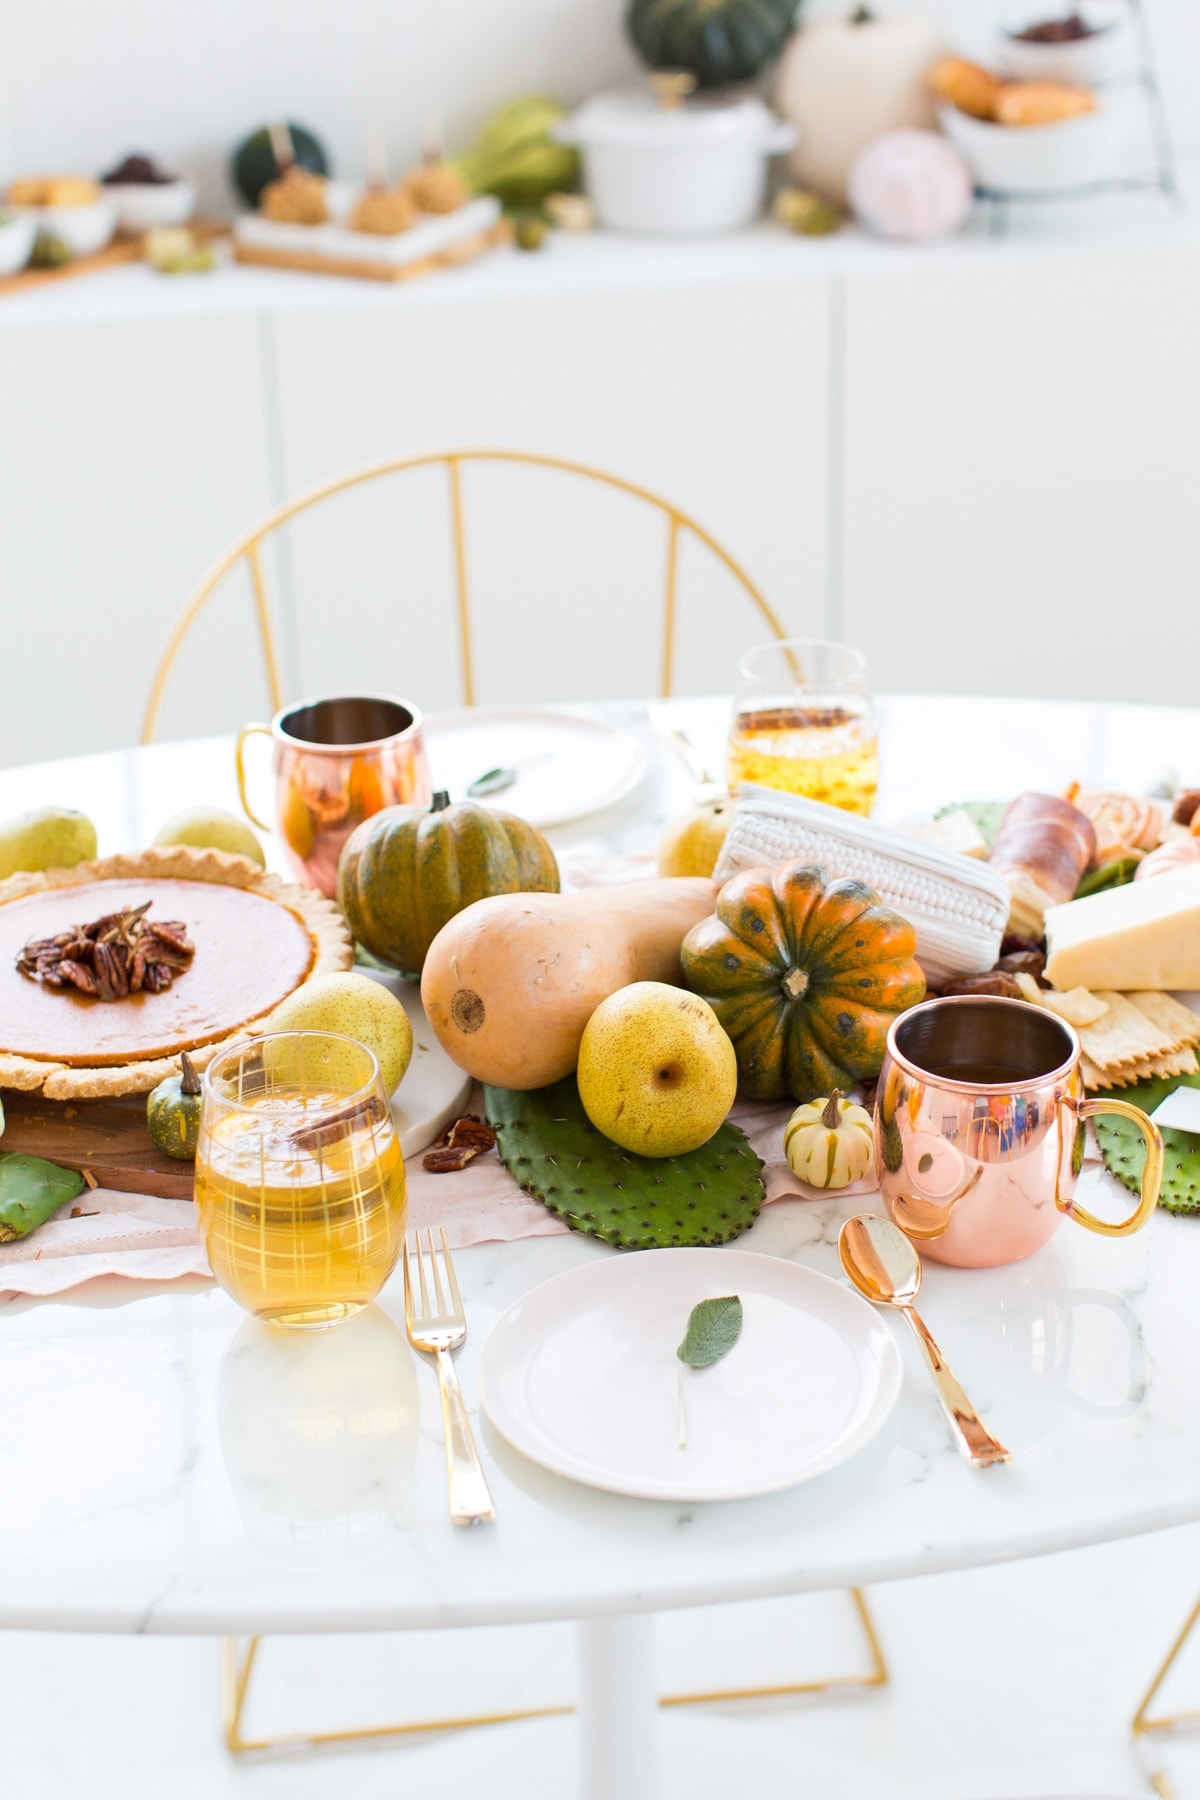 Friendsgiving Table Setting Idea + Sparkling Pumpkin Cider Recipe by top Houston Lifestyle blogger Ashley Rose of Sugar and Cloth